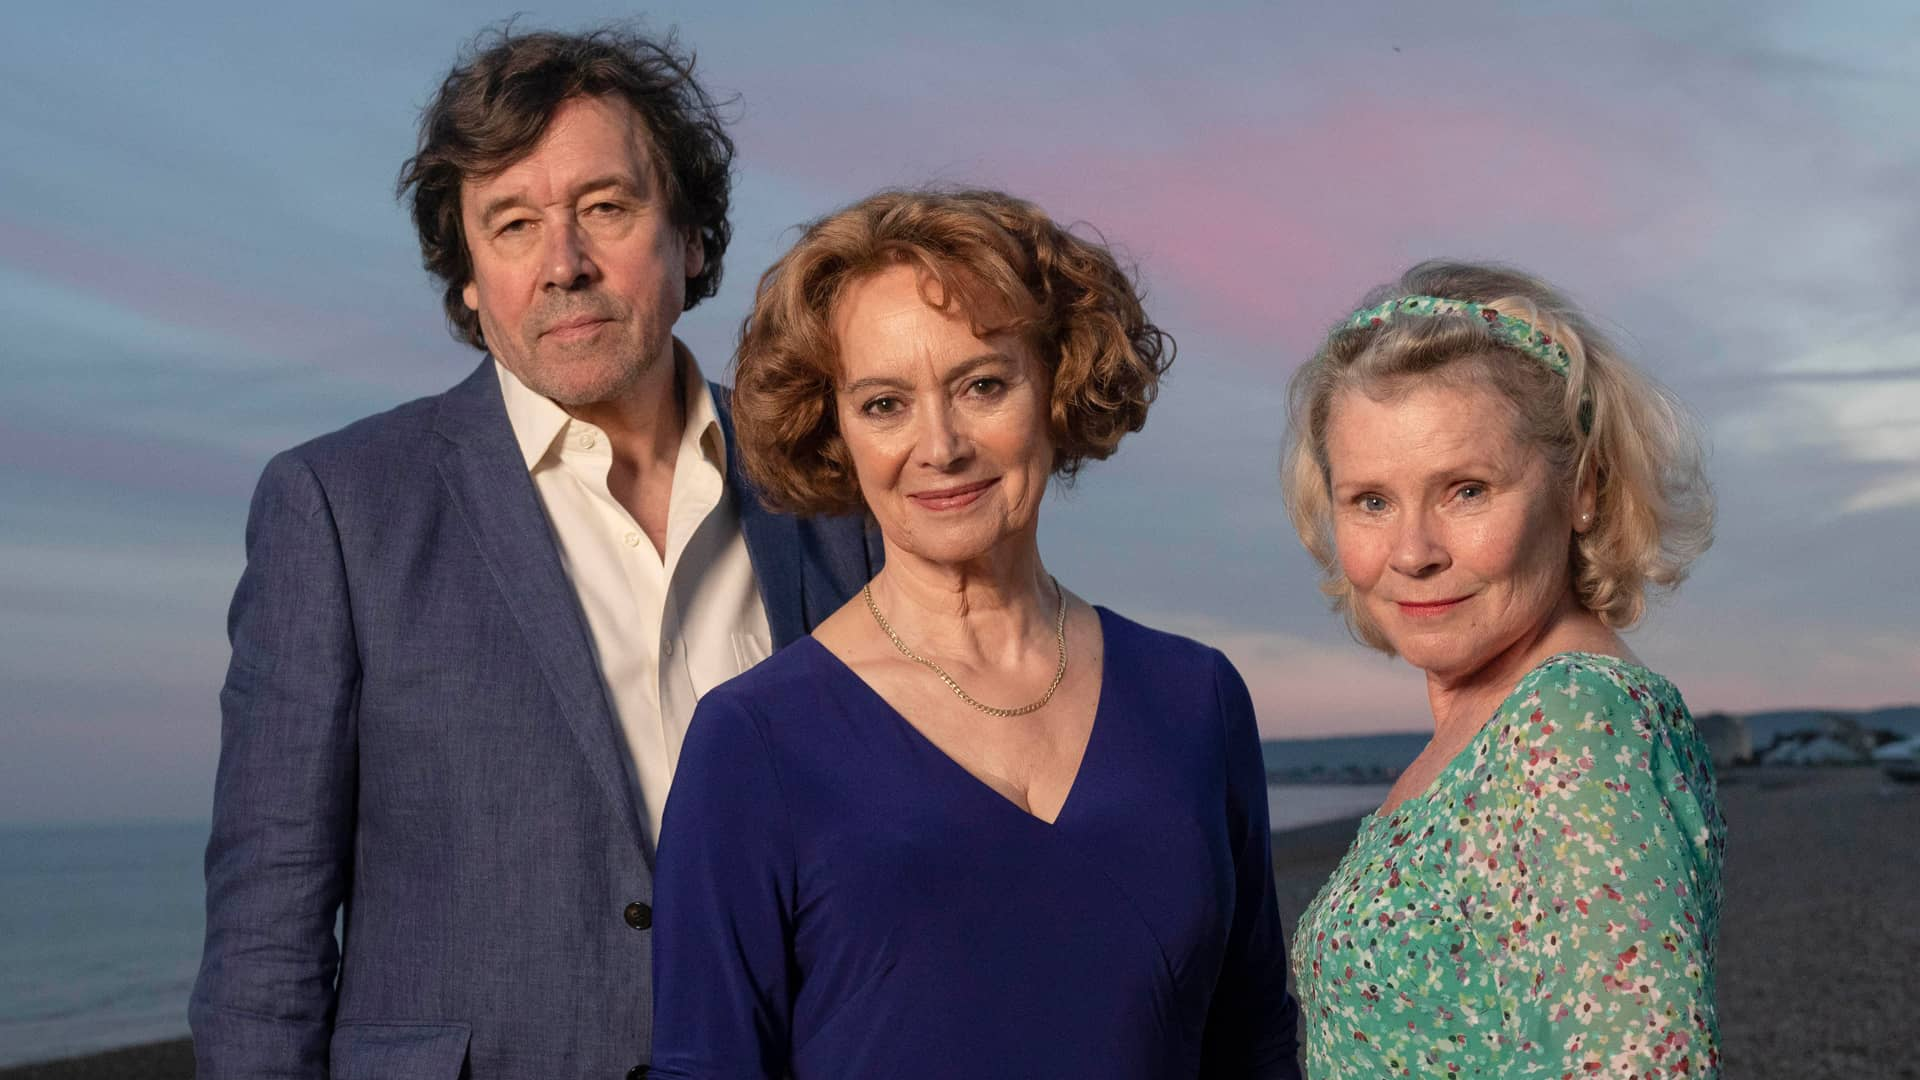 Stephen Rea, Francesca Annis and Imelda Staunton star in Flesh and Blood on MASTERPIECE PBS